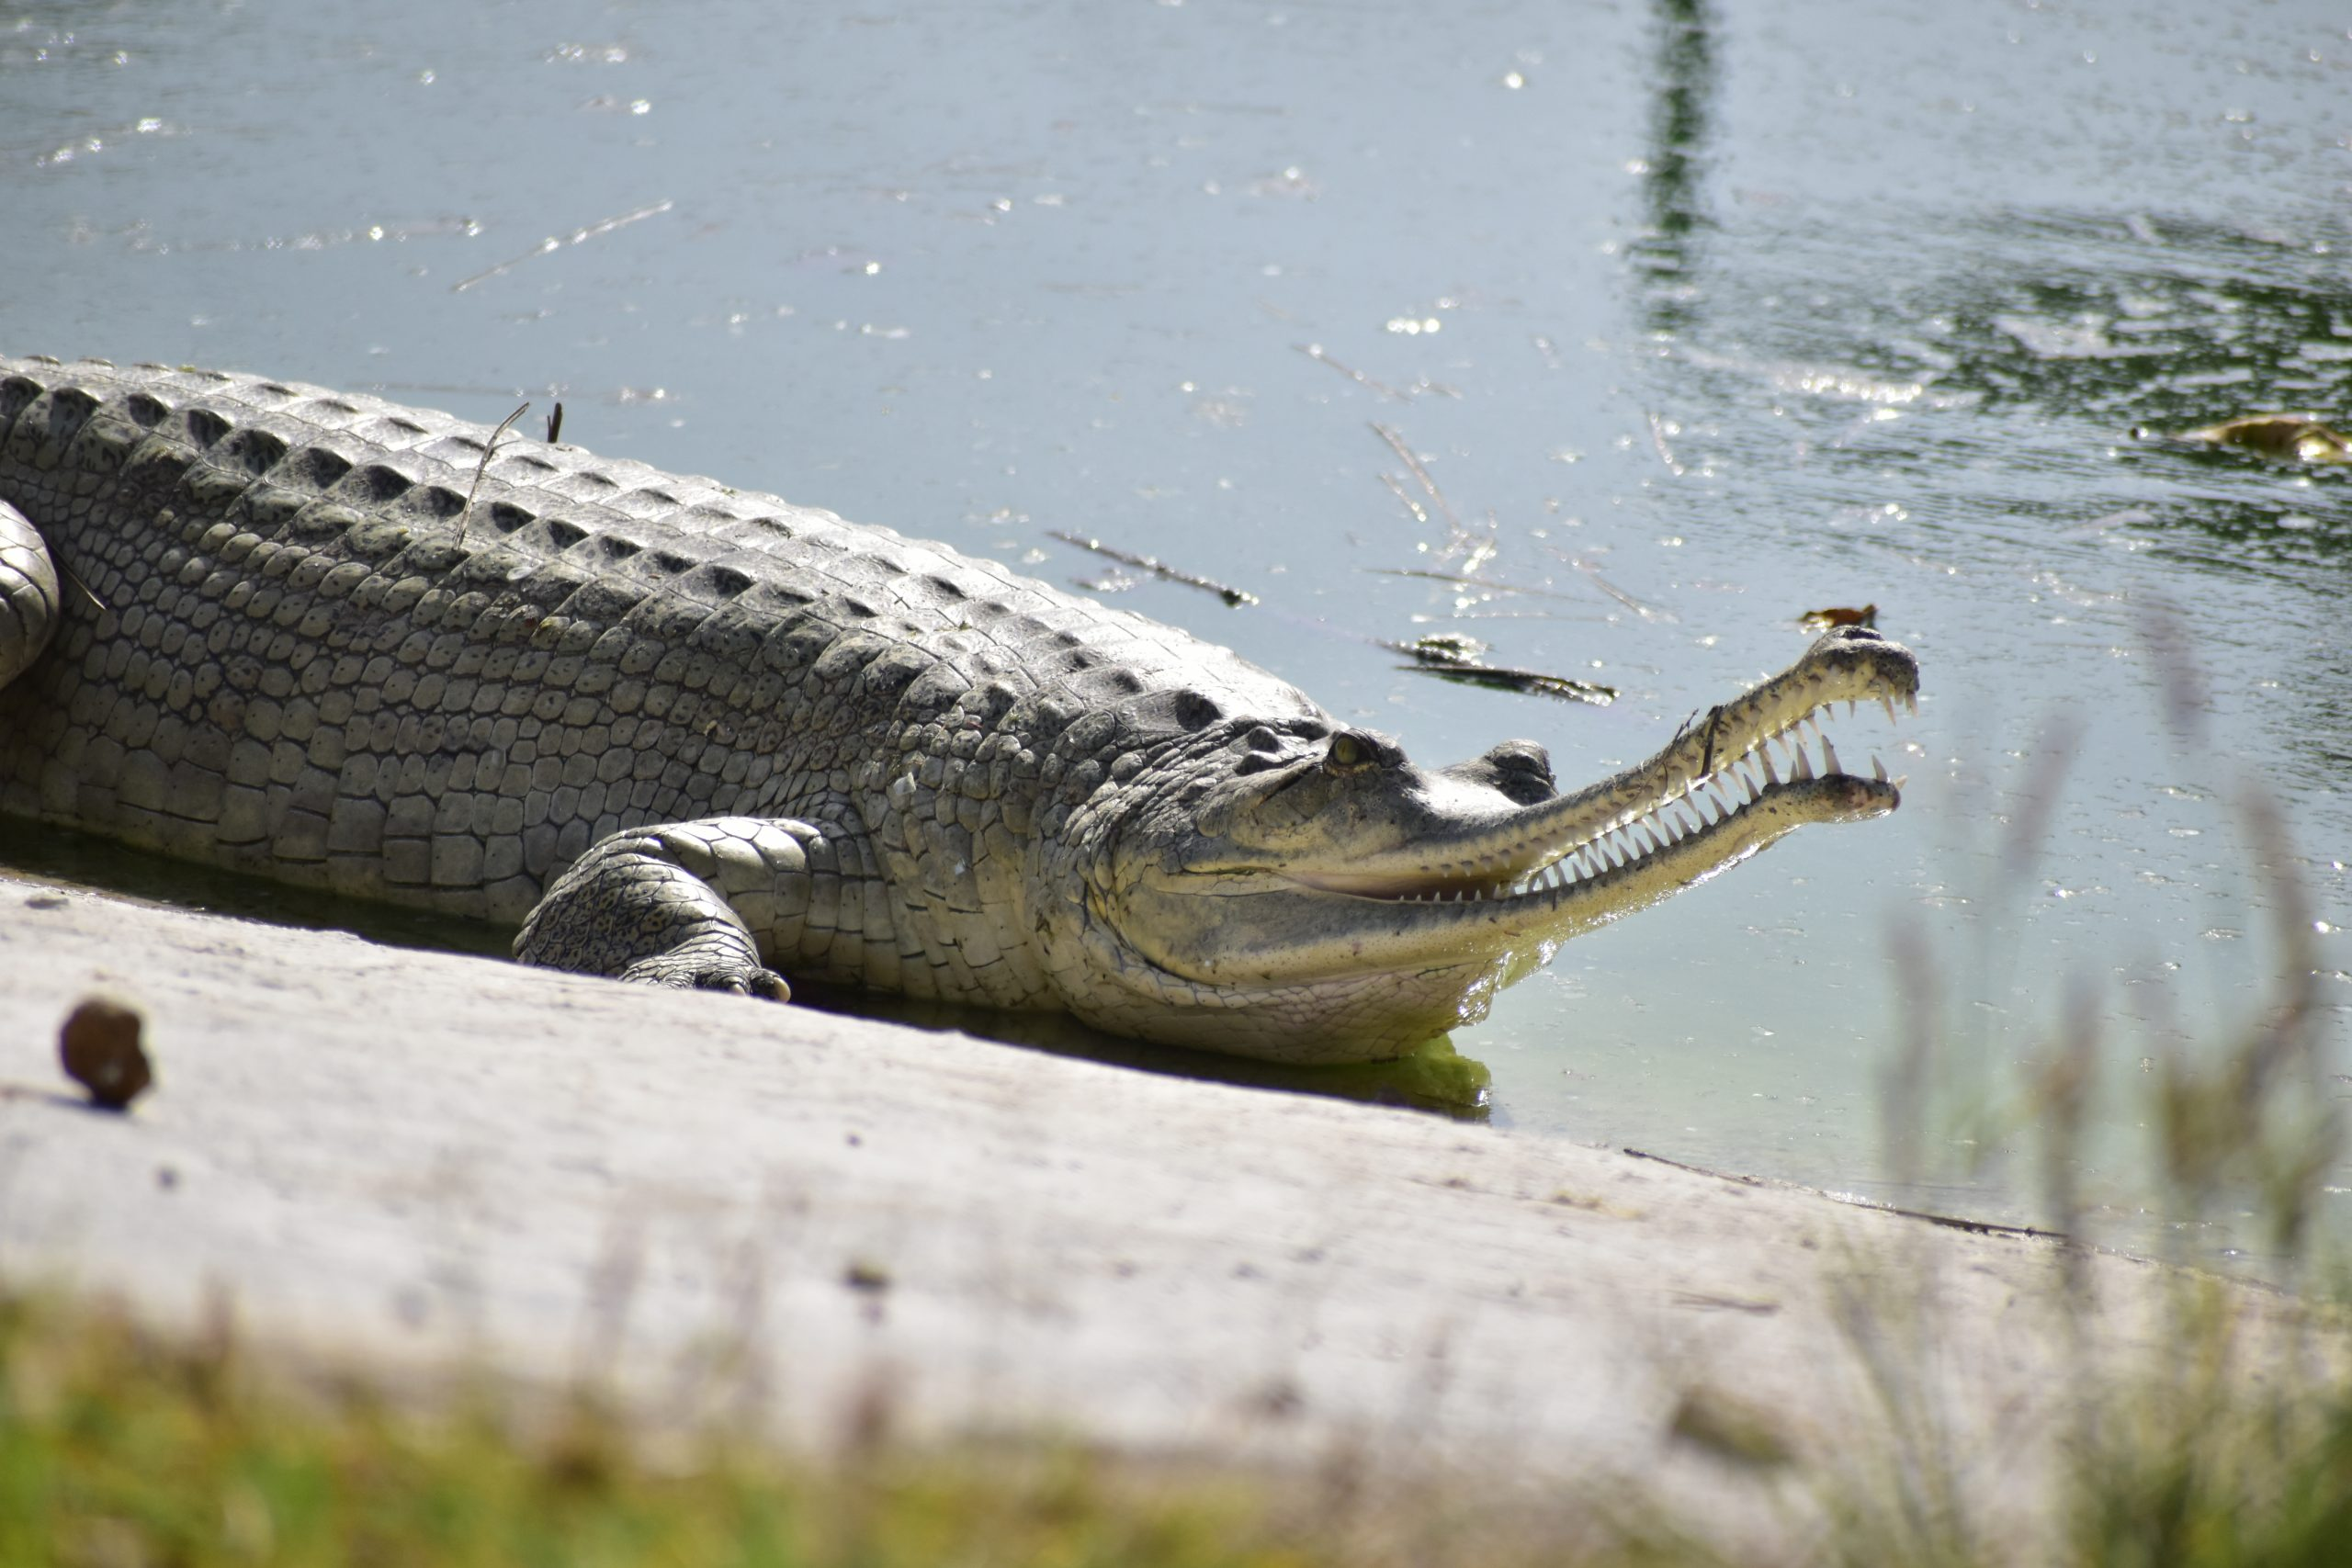 Crocodile in the pond